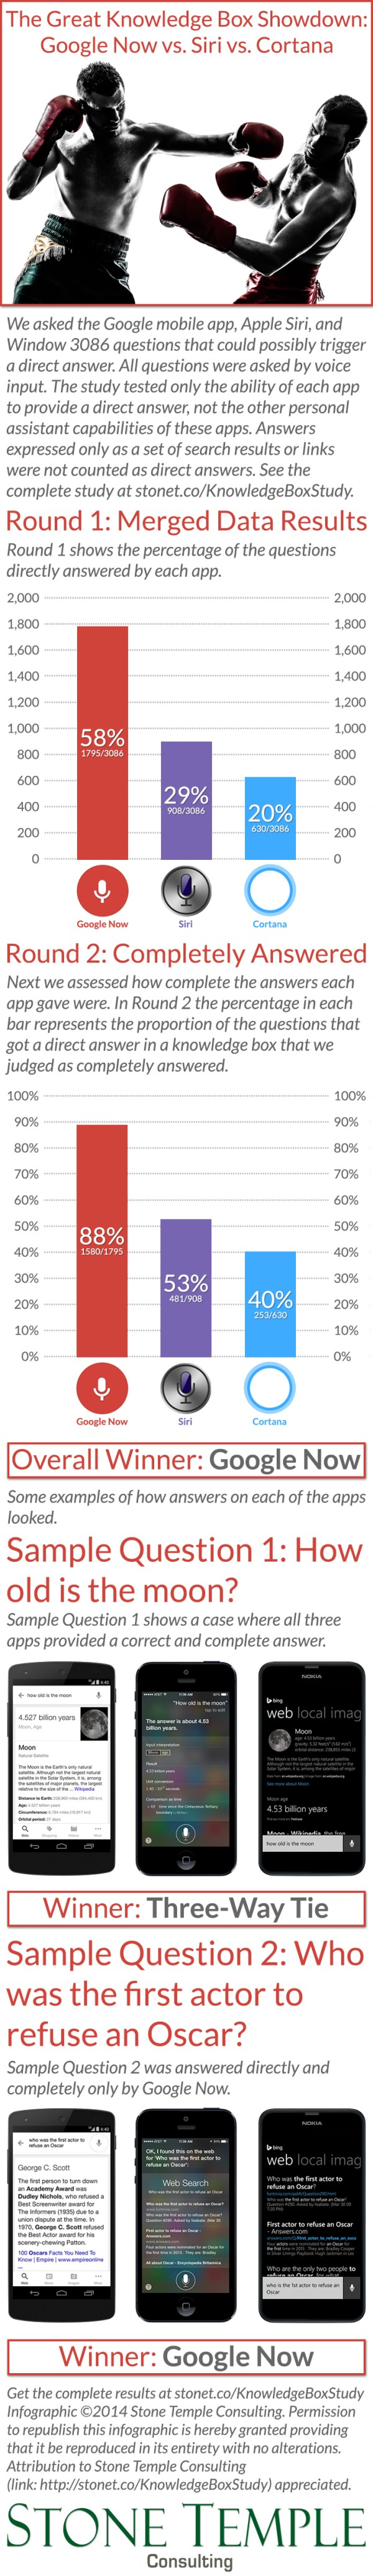 Voice Apps Question Answering Test Results